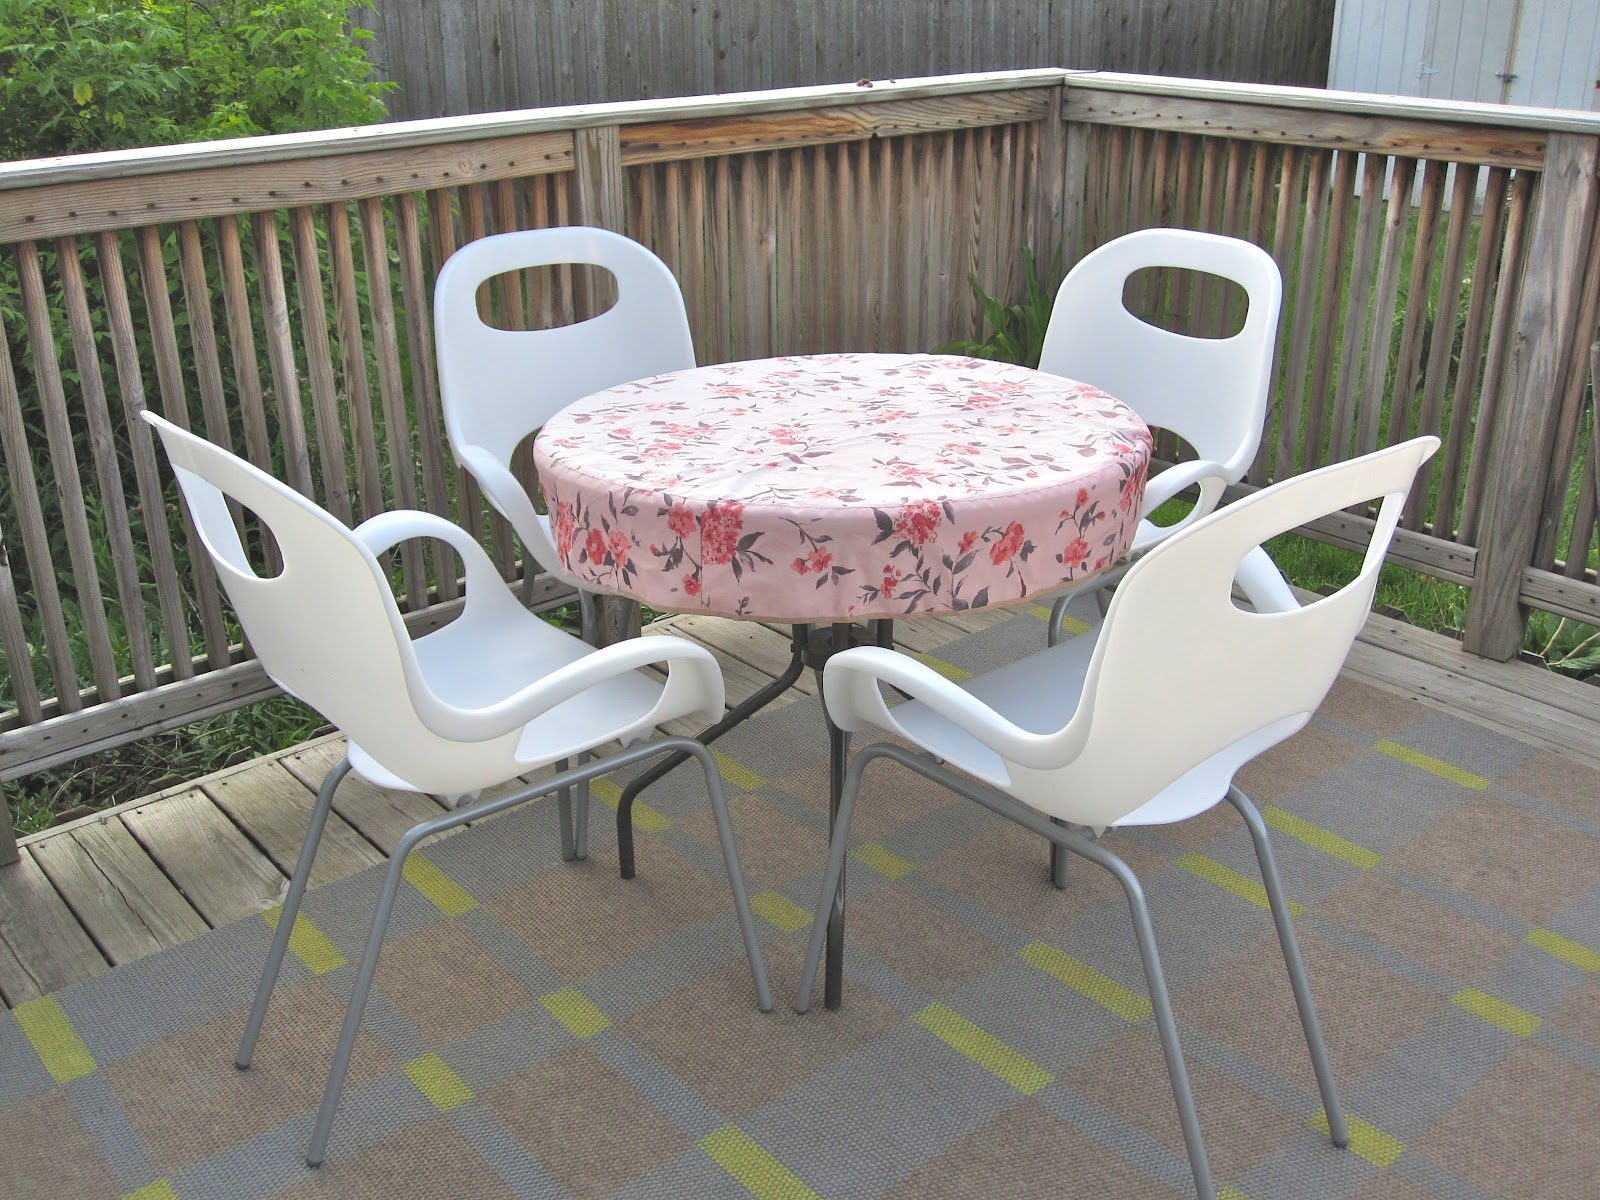 Picture of: Patio table cover on a budget